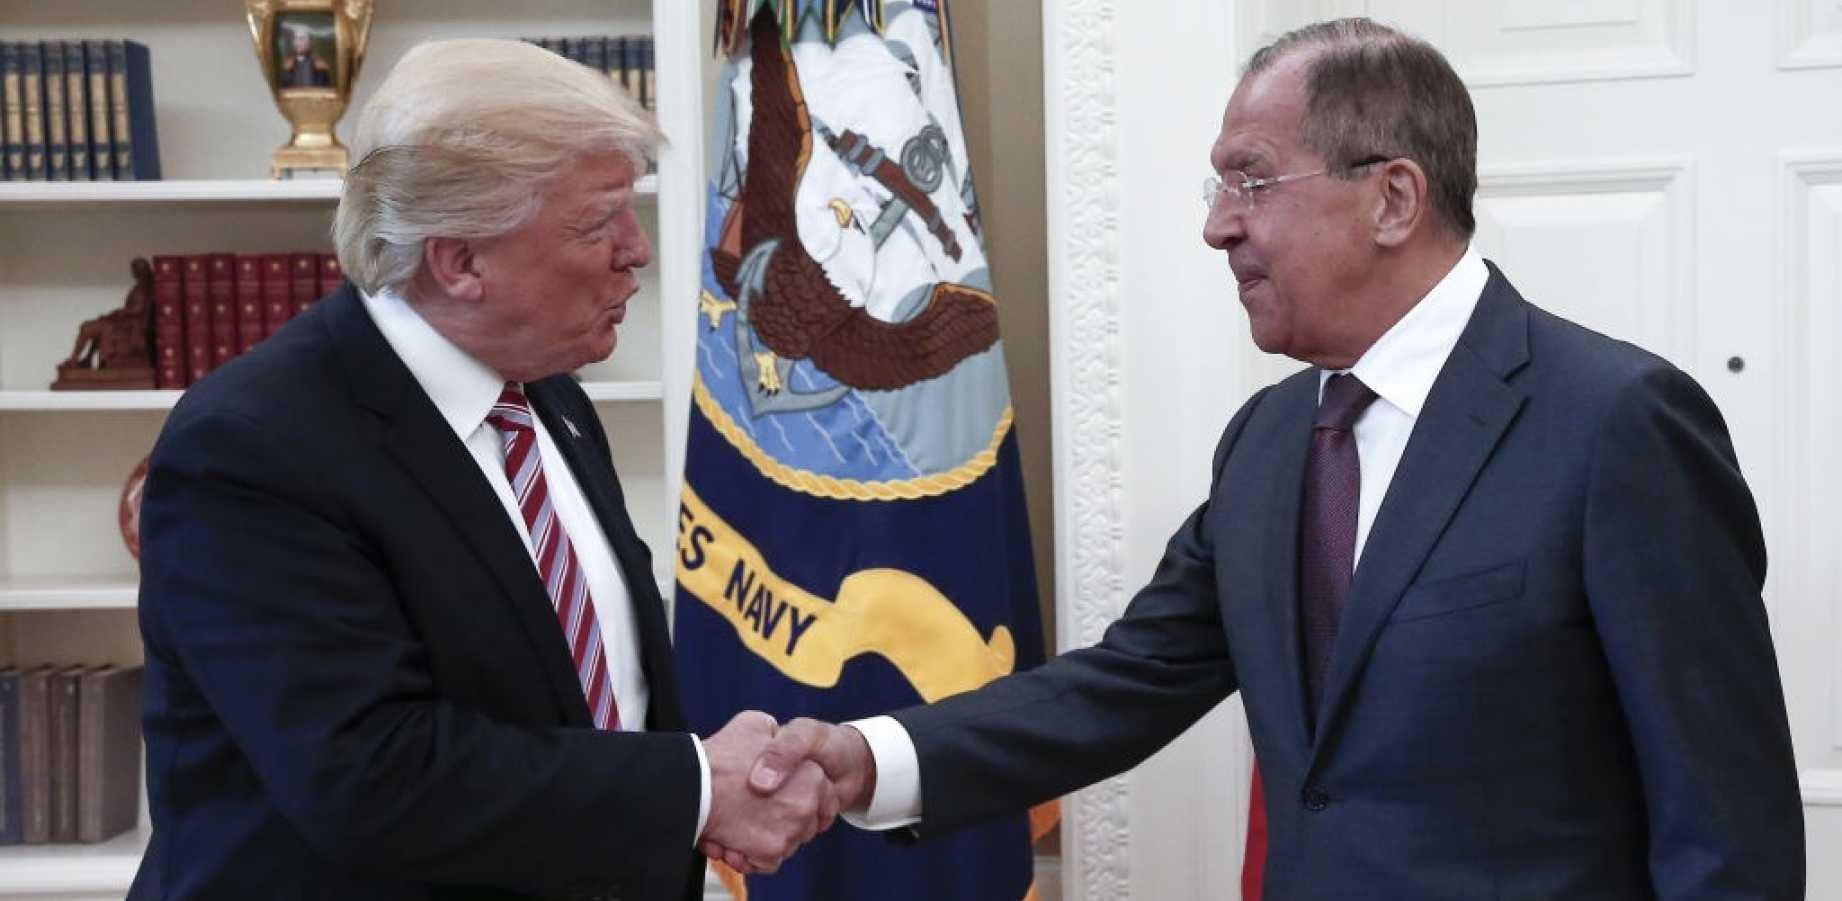 BREAKING: After Team Trump Denies Trump Shared Classified Information With Russia, Trump Tweets That He Did 'Share With Russia'